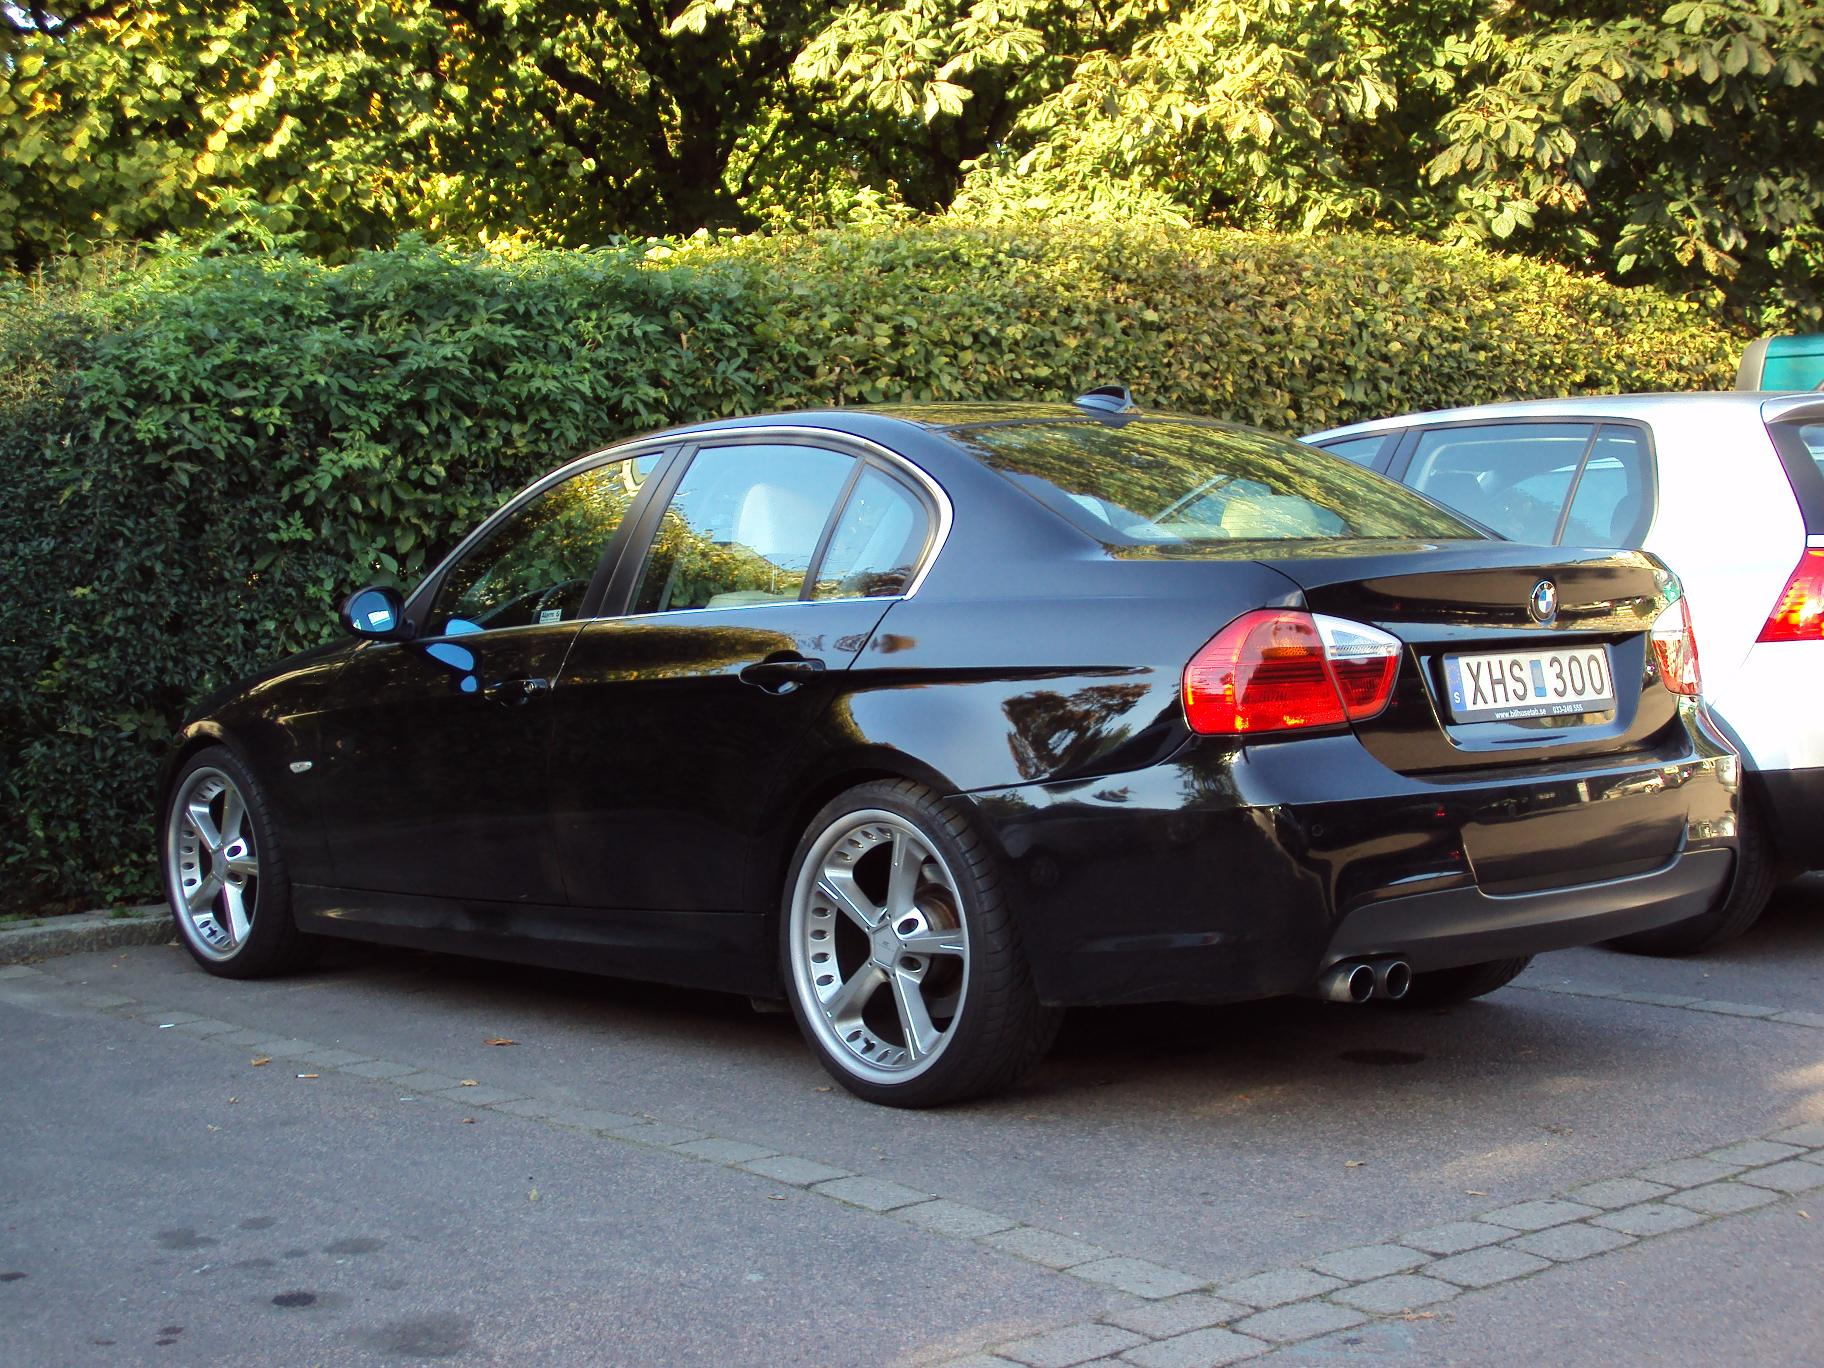 filebmw 3 series e90 5090108988jpg wikimedia commons